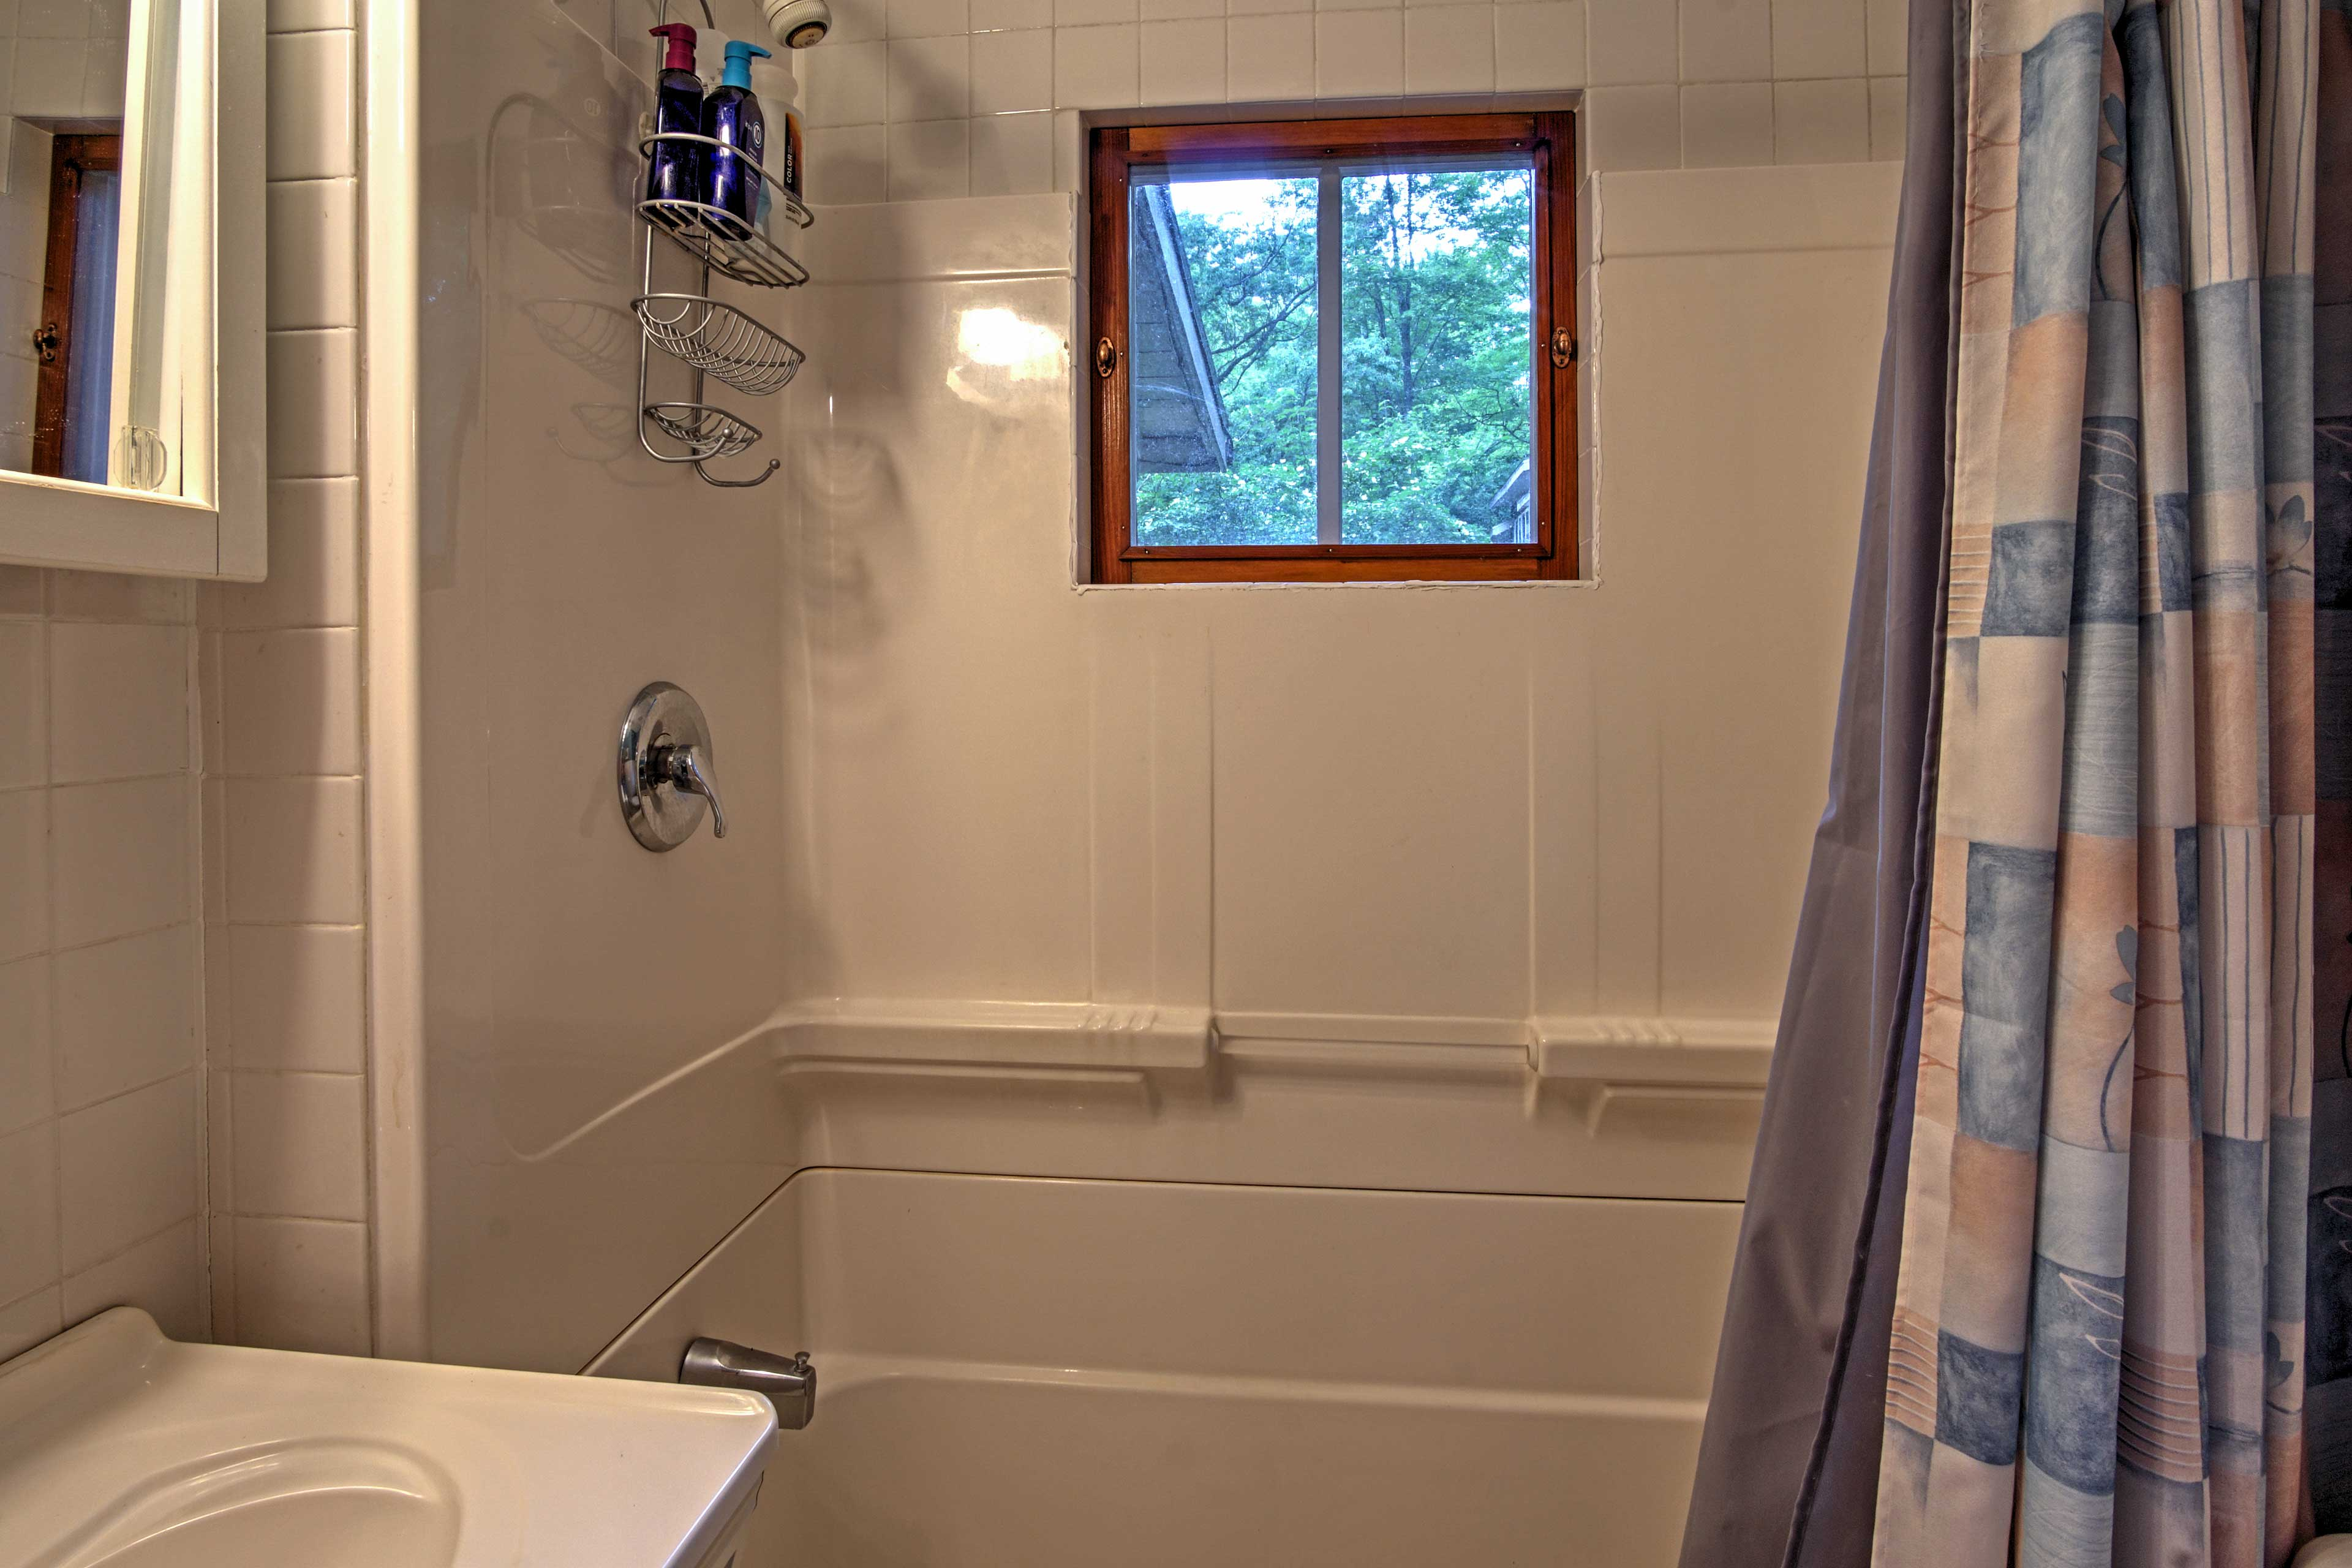 Freshen up in the full bathroom that features a shower/tub combo.